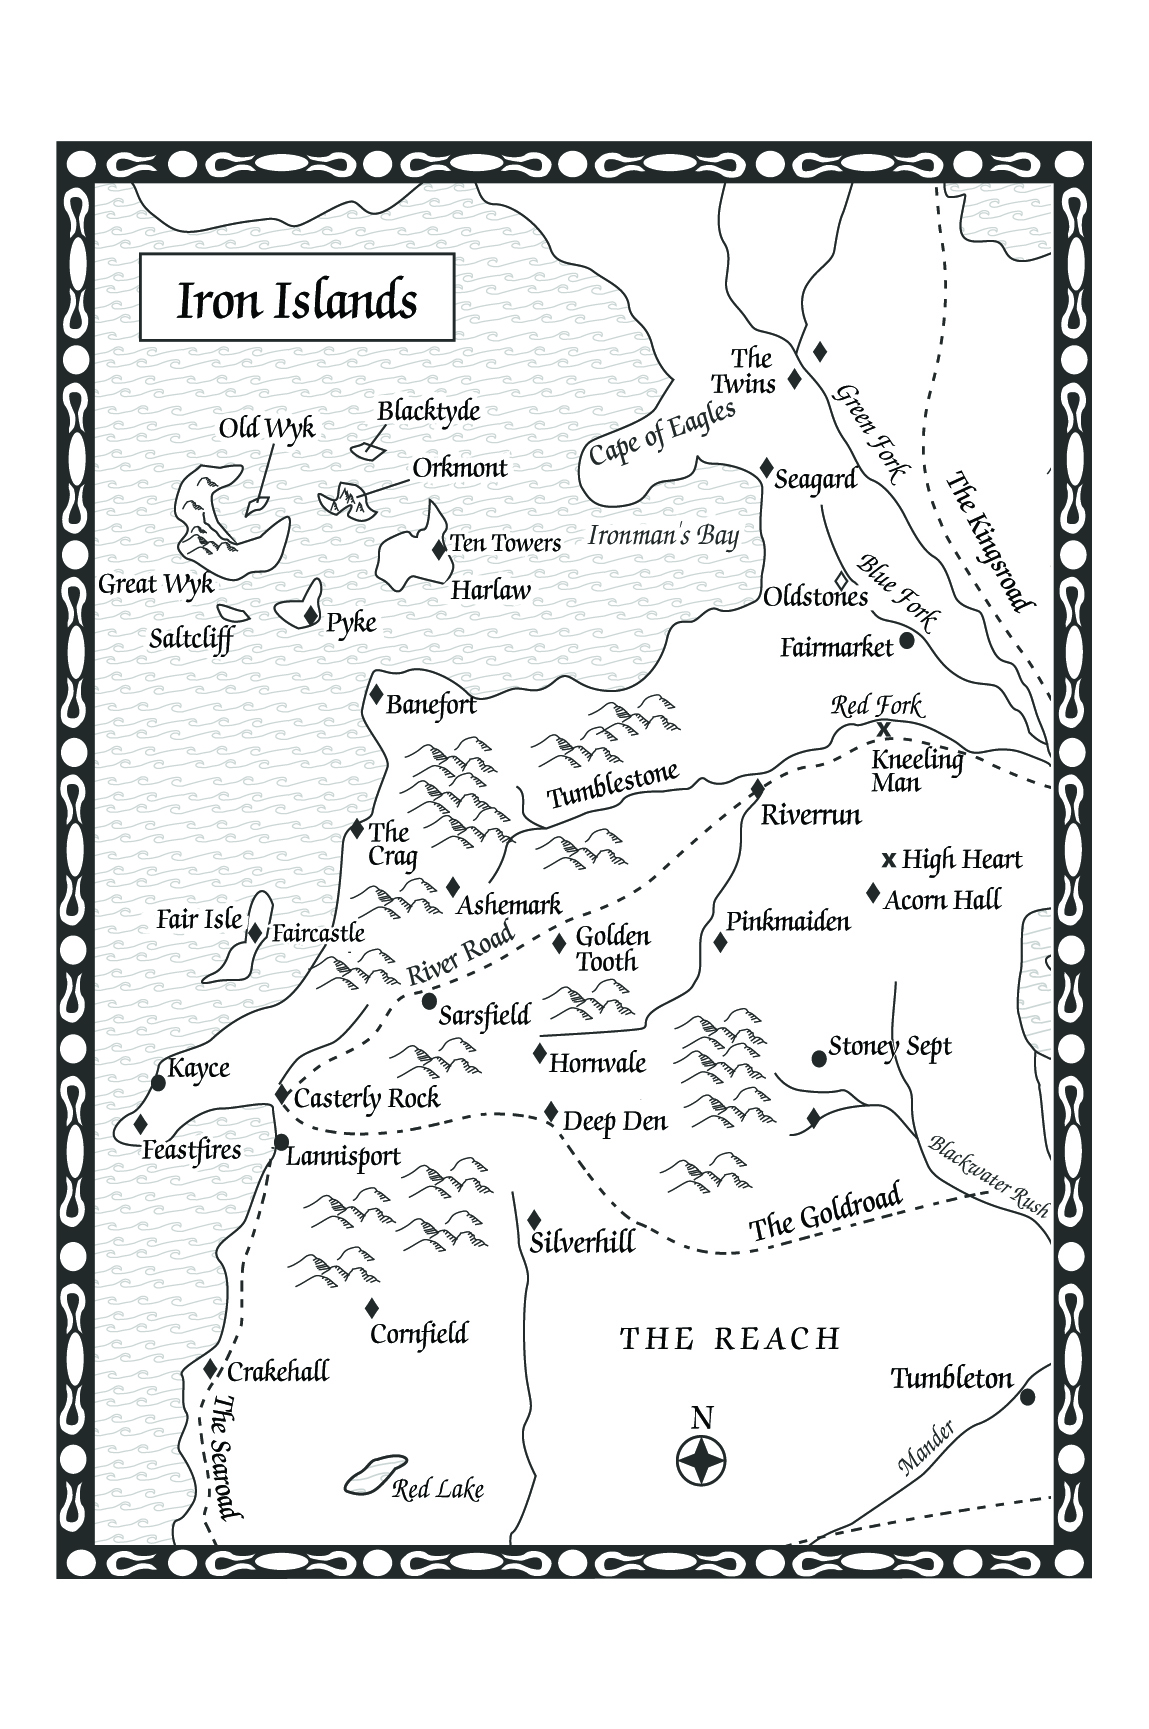 a feast for crows-map of the iron islands